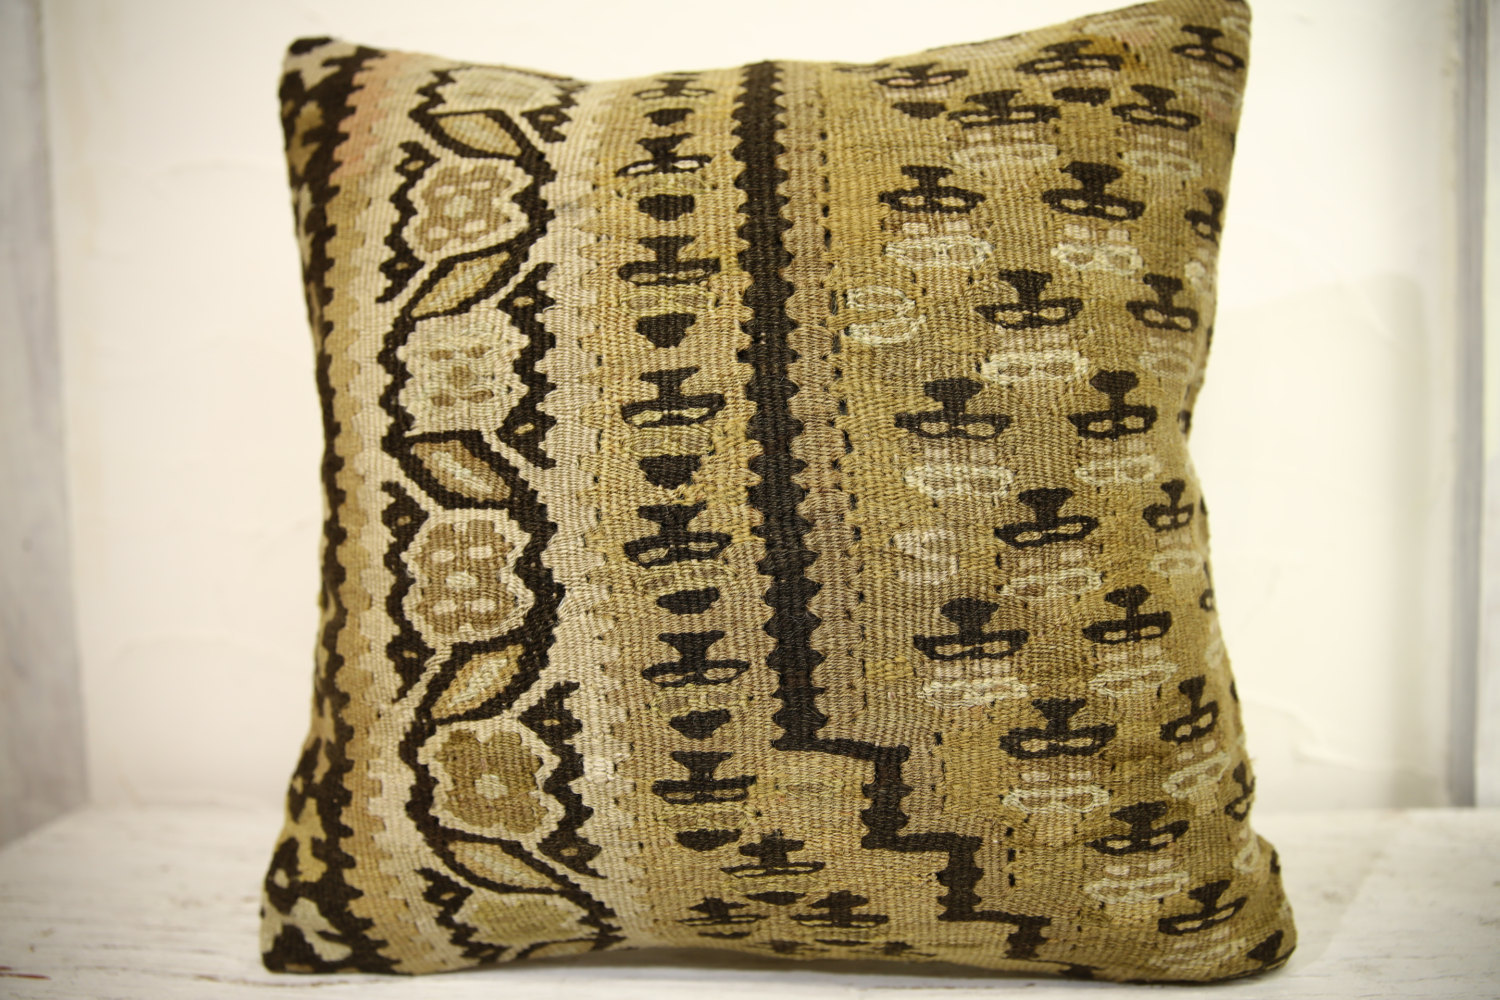 Kilim Pillows |18x18| Decorative Pillows | 1007 | Accent Pillows, Kilim cushion